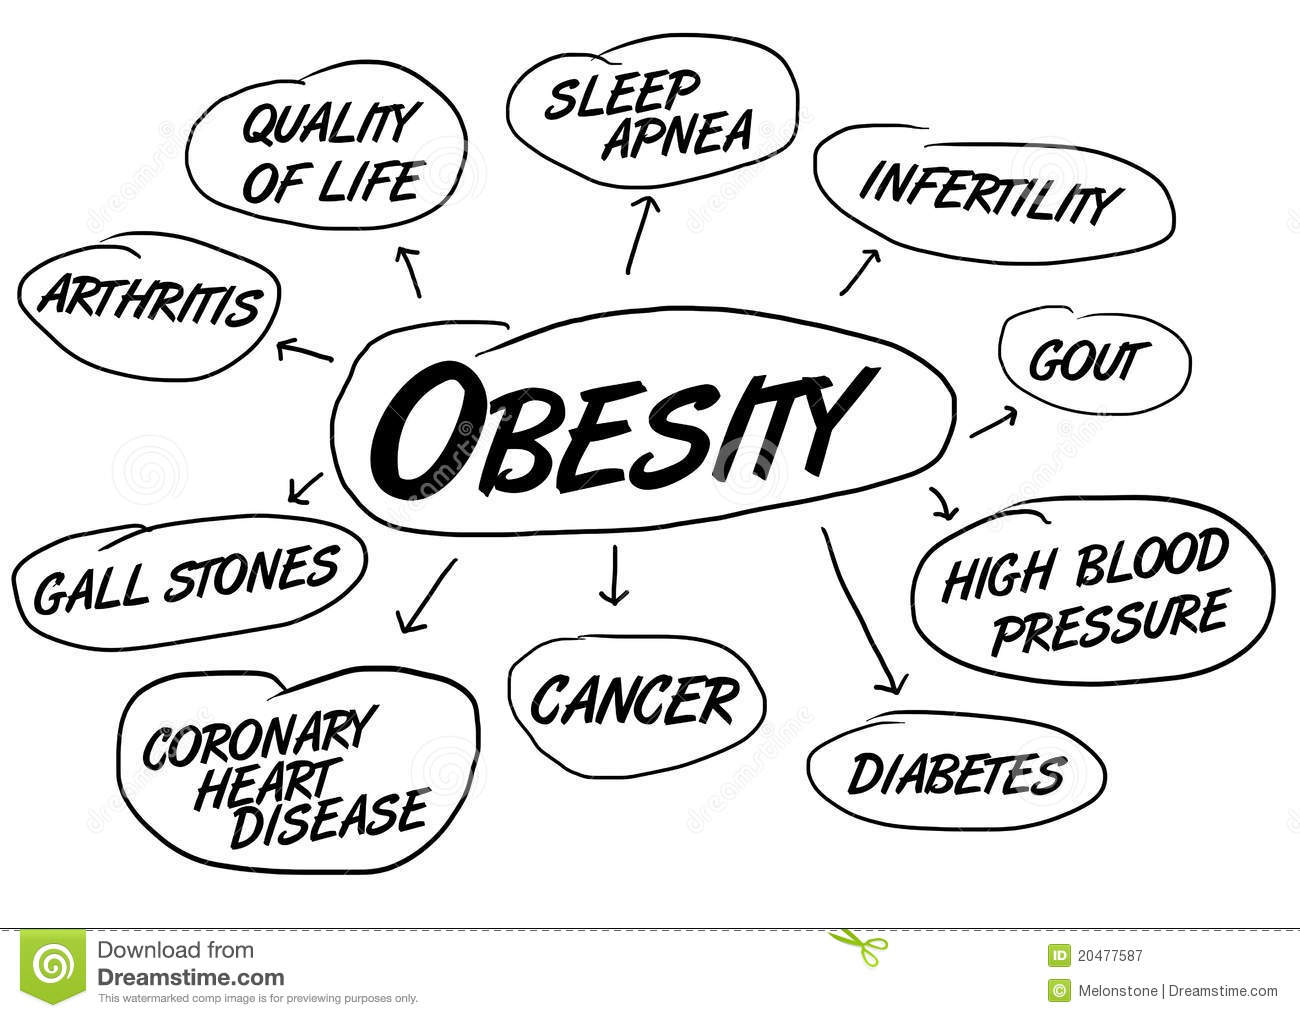 Why Obesity is a health risk - by the Ocean Integrated Wellness Center founder, Dr. Vince Giardina - Toms River NJ Chiropractor